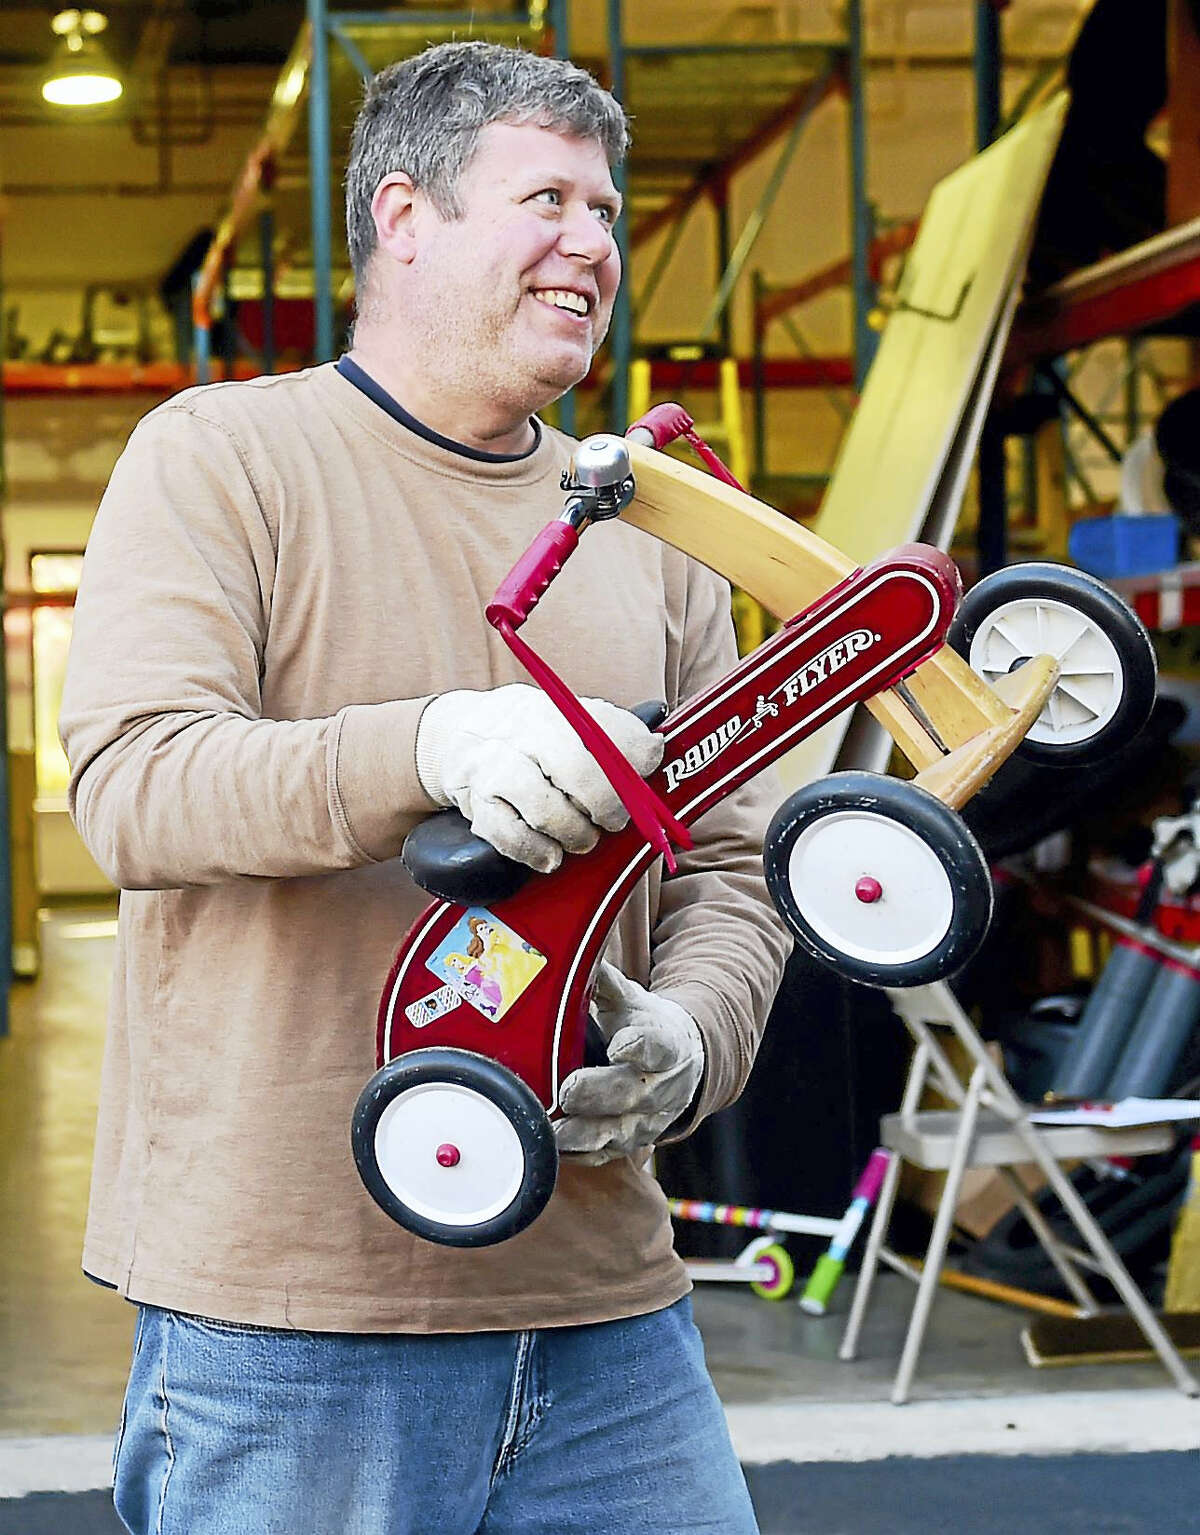 Volunteer Brian Lewis of Old Saybrook, left, helps Bikes For Kids move by loading a tricyle onto a Zanes Cycles delivery truck from the former Old Saybrook location.